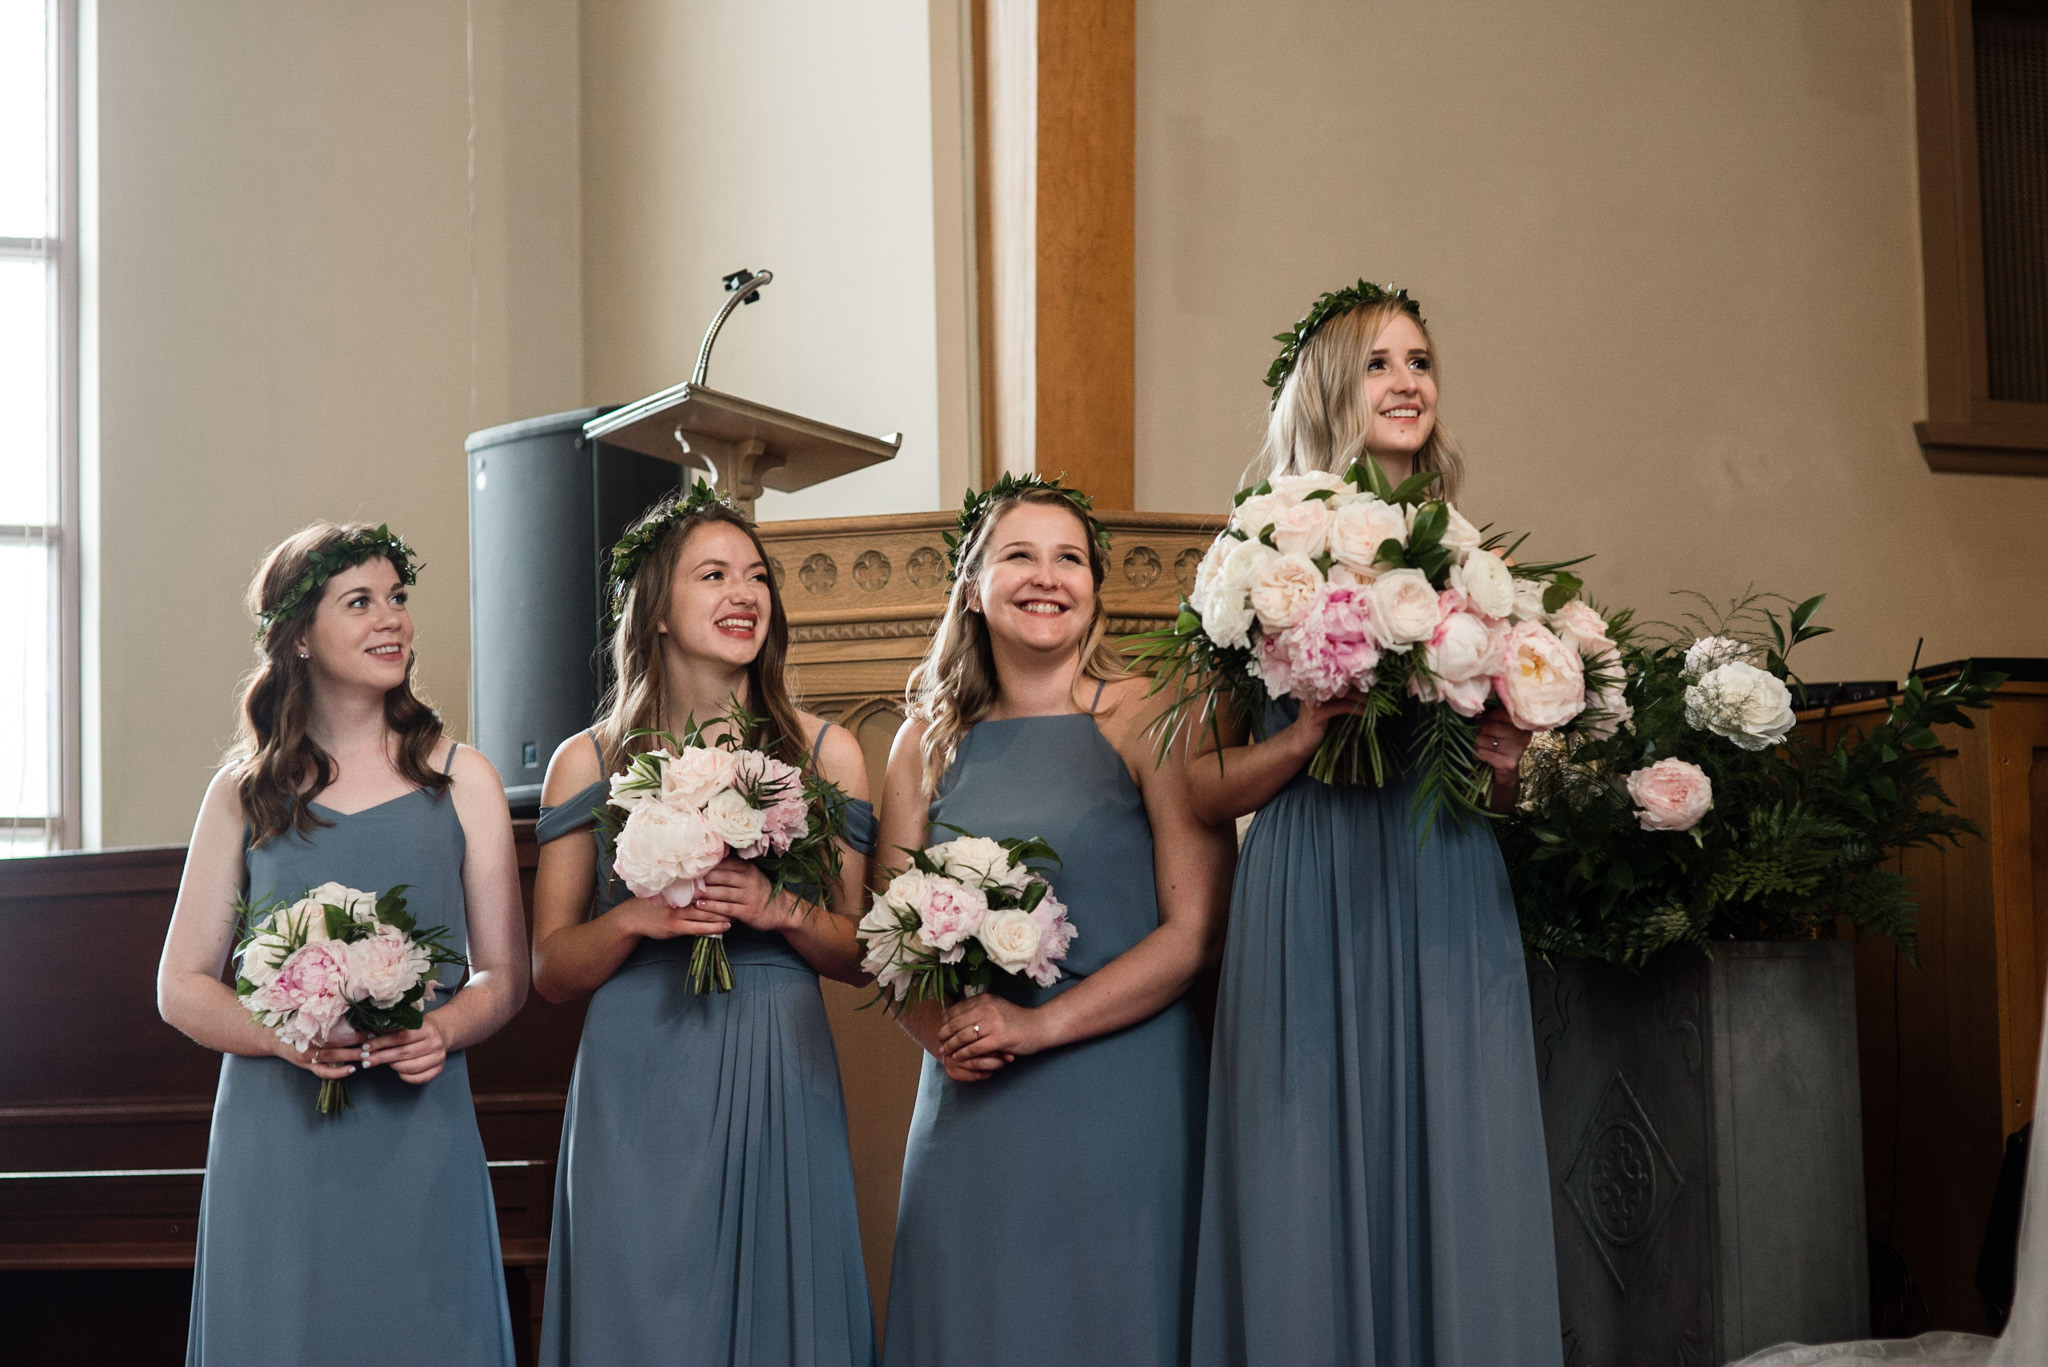 183-pale-blue-bridesmaids-dresses-flower-crowns.jpg